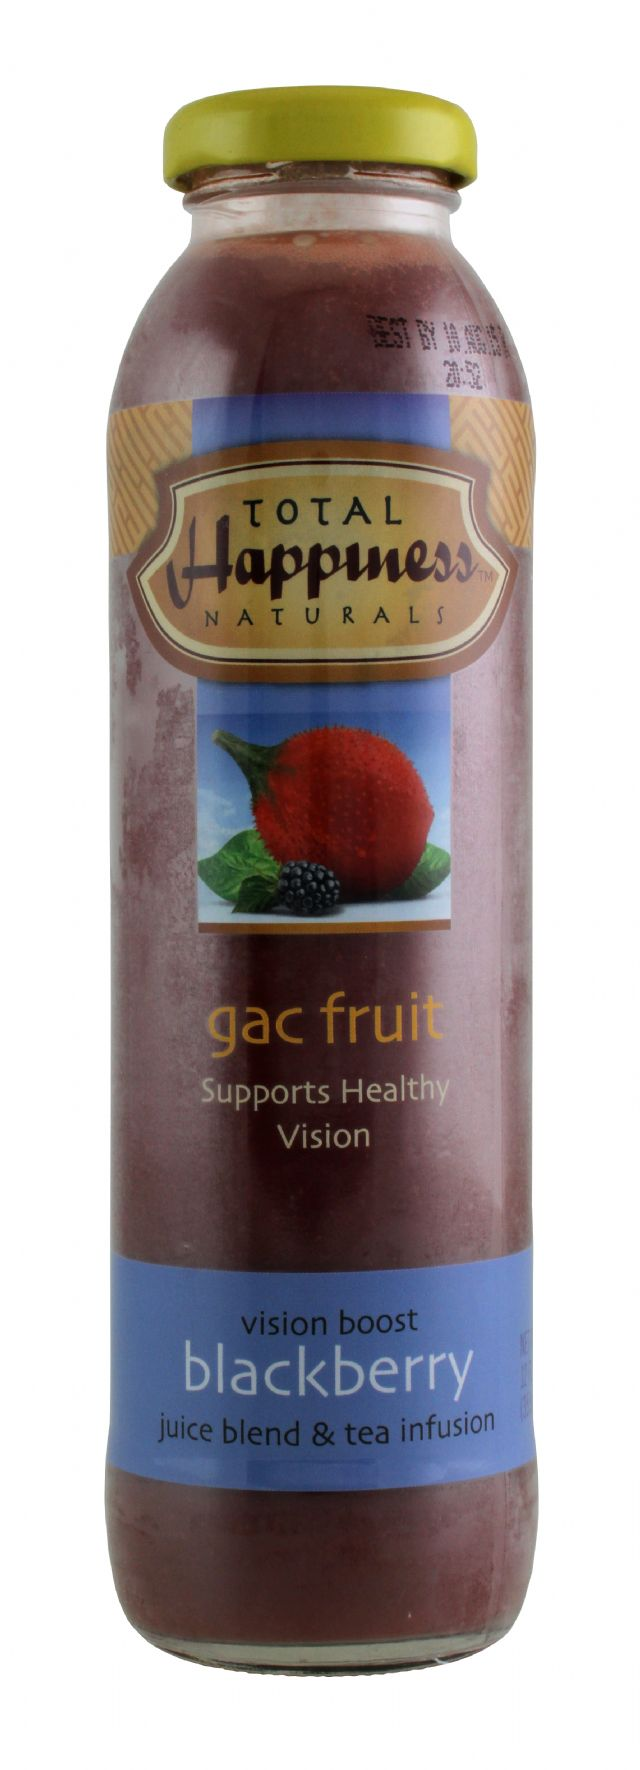 Total Happiness Naturals: TotalHappiness Blackberry Front